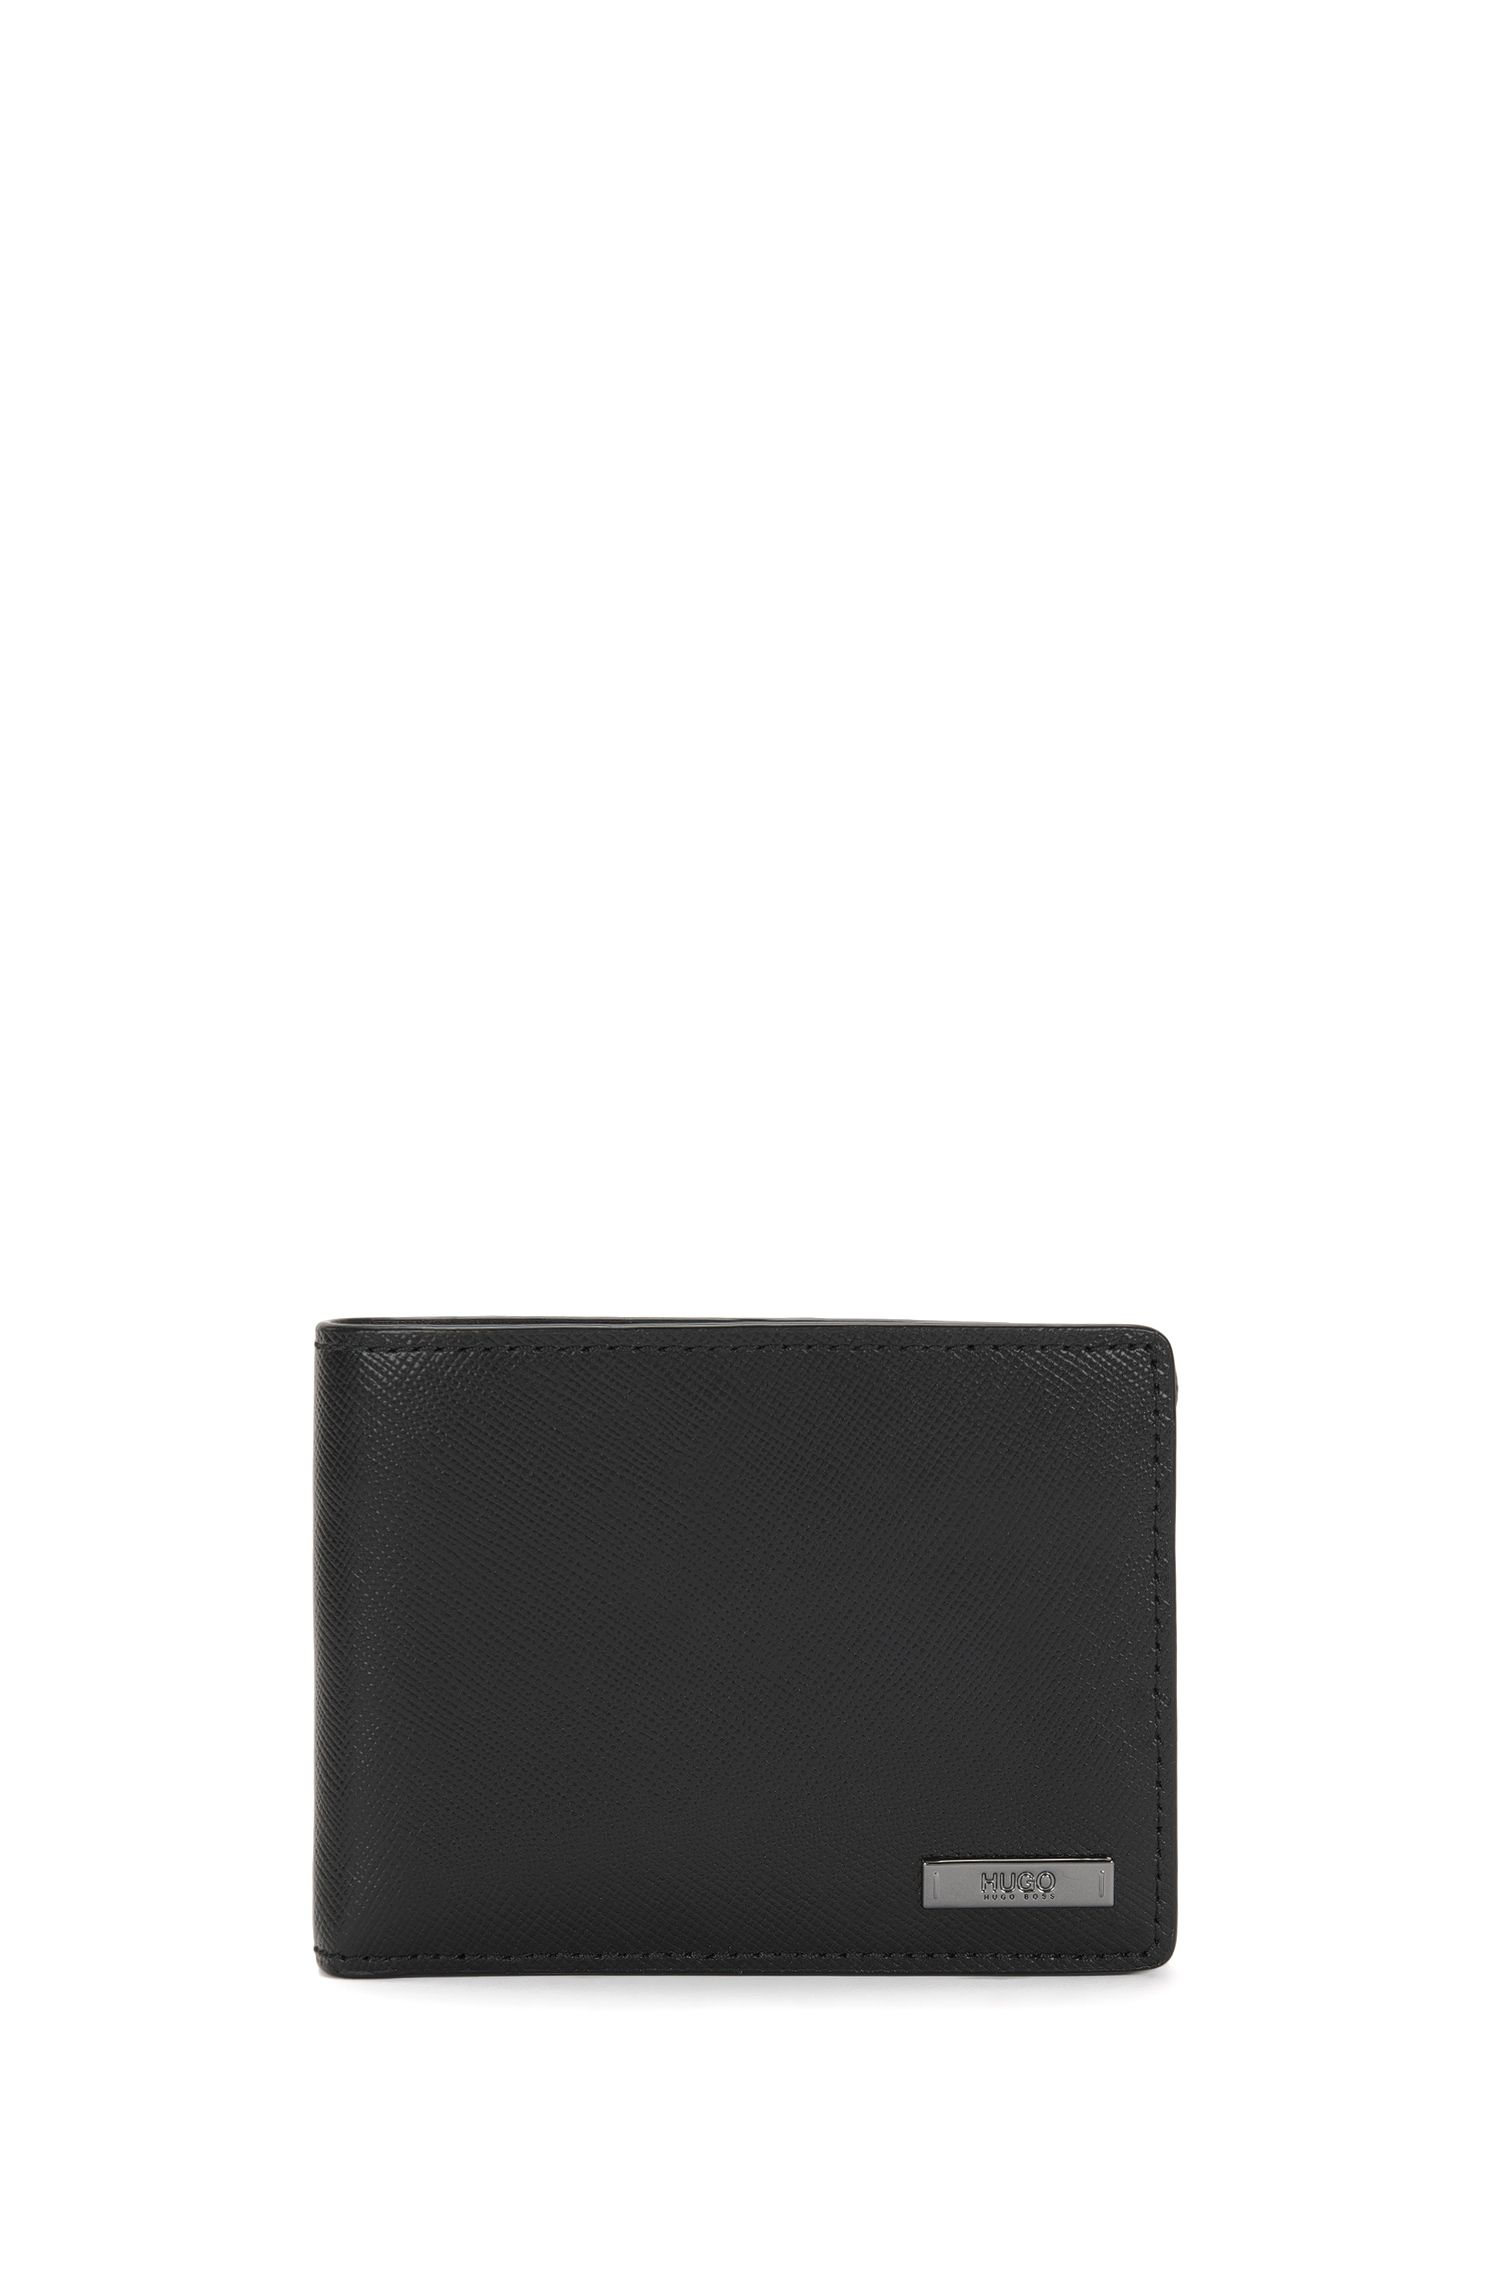 Small-format wallet in leather with Saffiano embossing: 'Digital_6 cc'